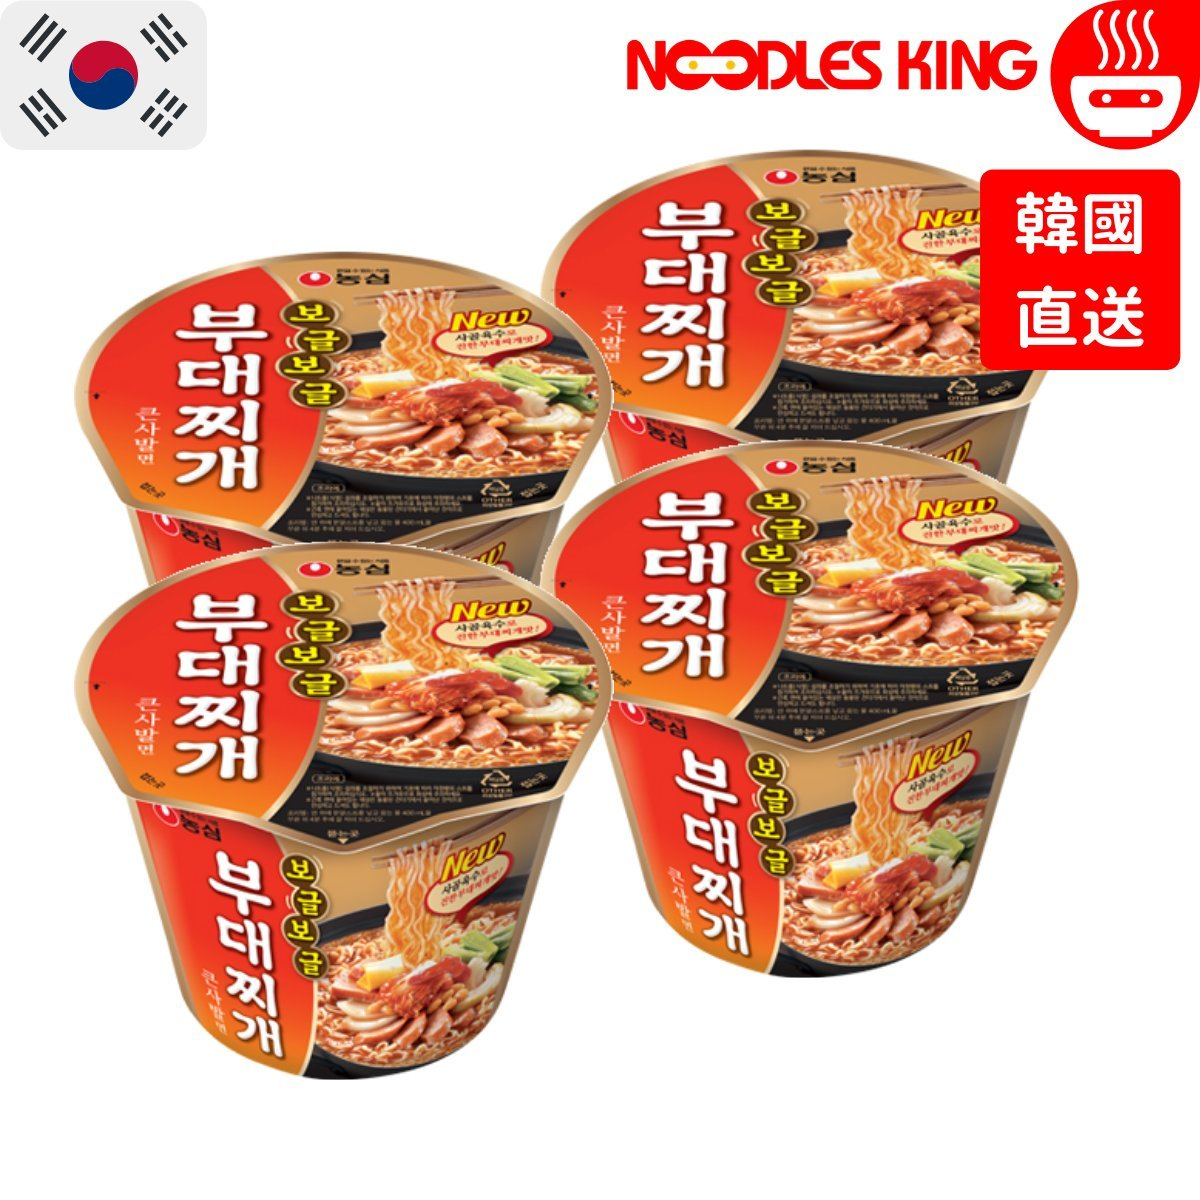 Budae Jjigae Big Bowl (Korea) 109g x 4